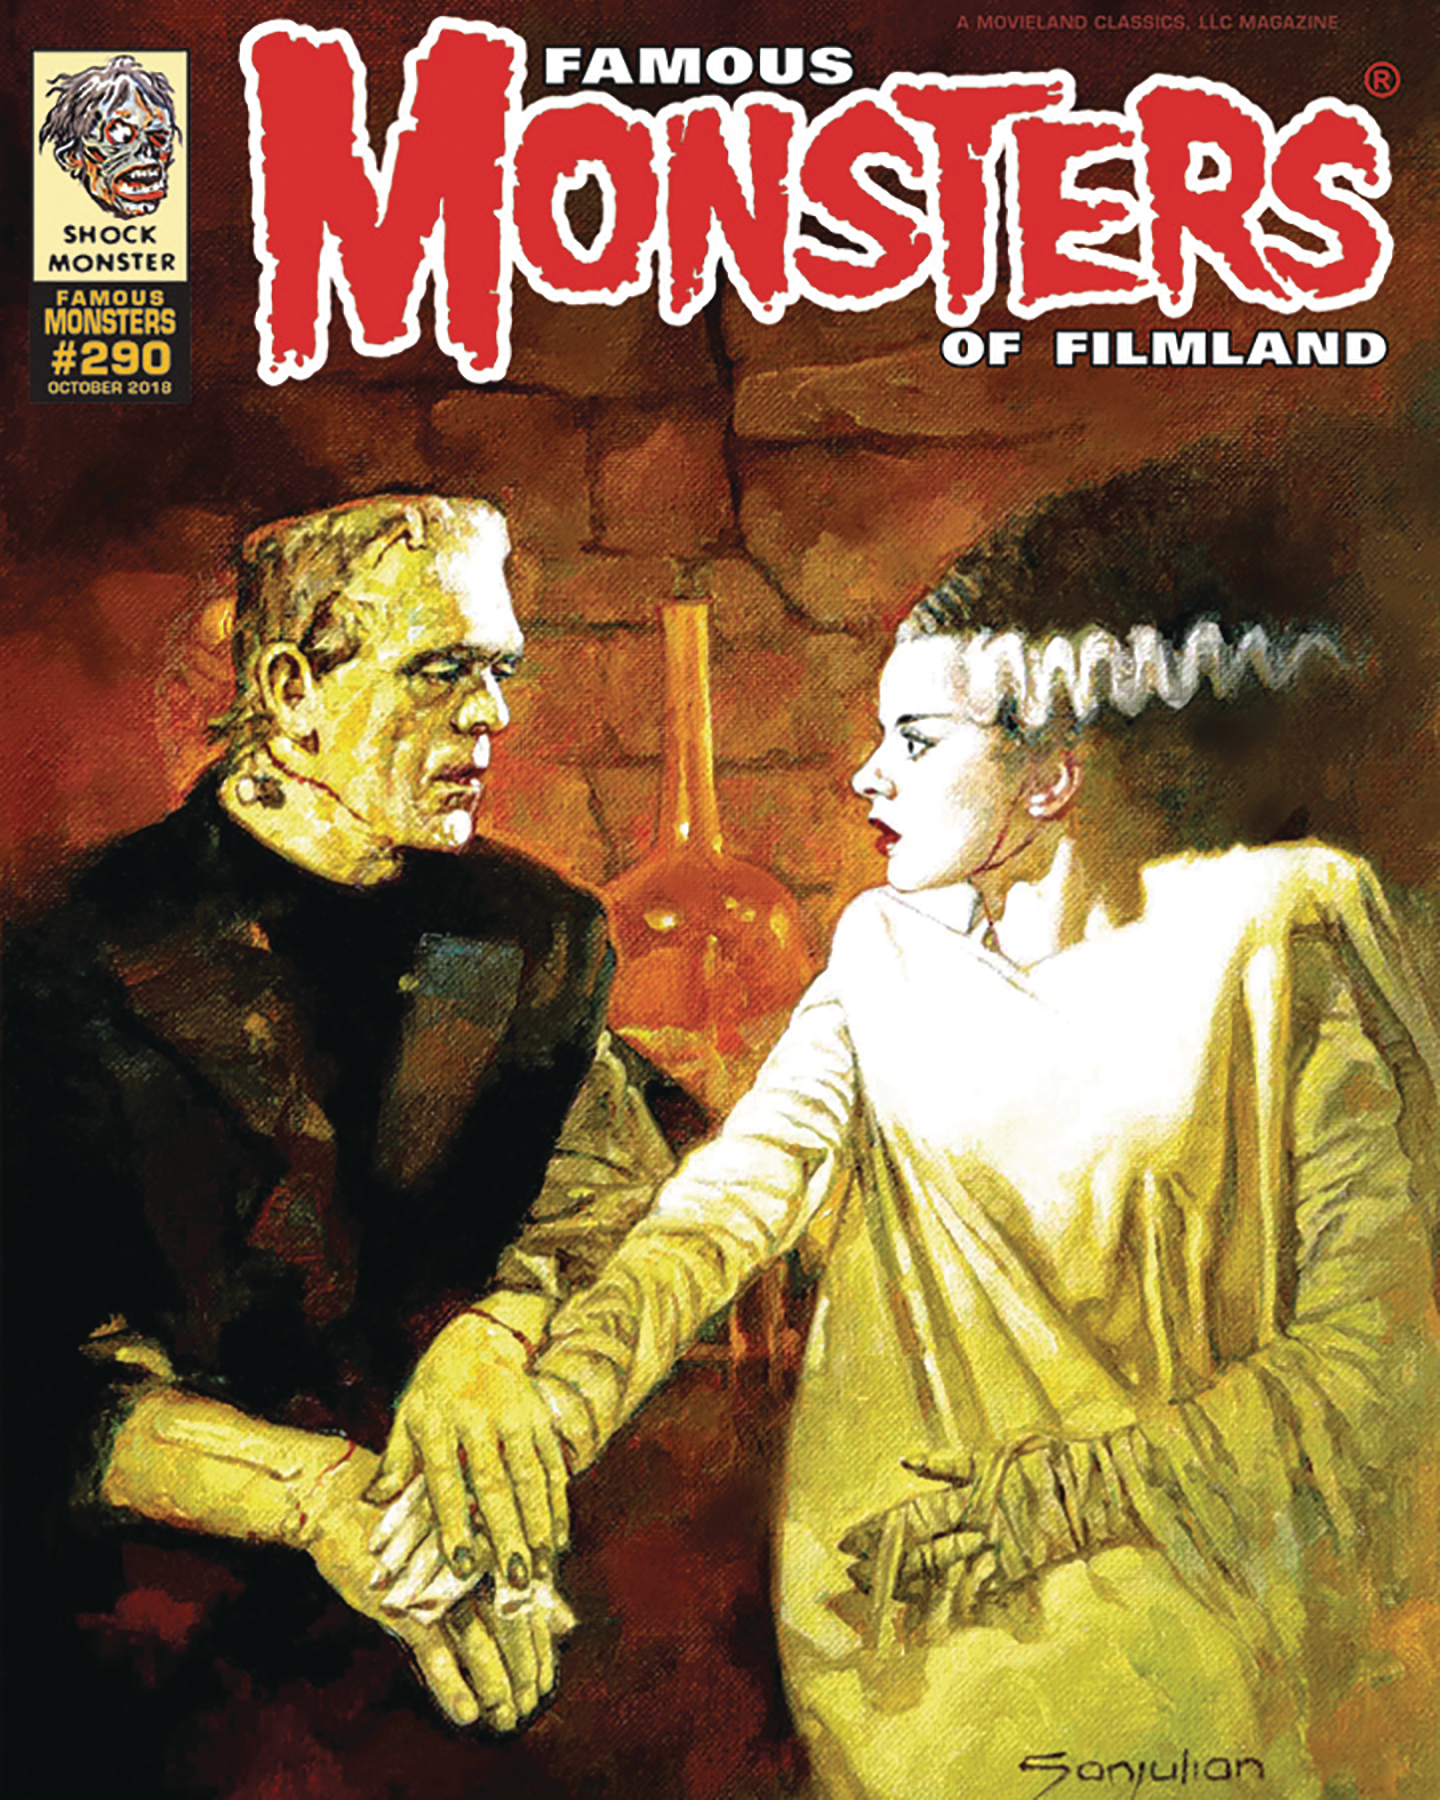 FAMOUS MONSTERS OF FILMLAND #290 2018 ANNUAL